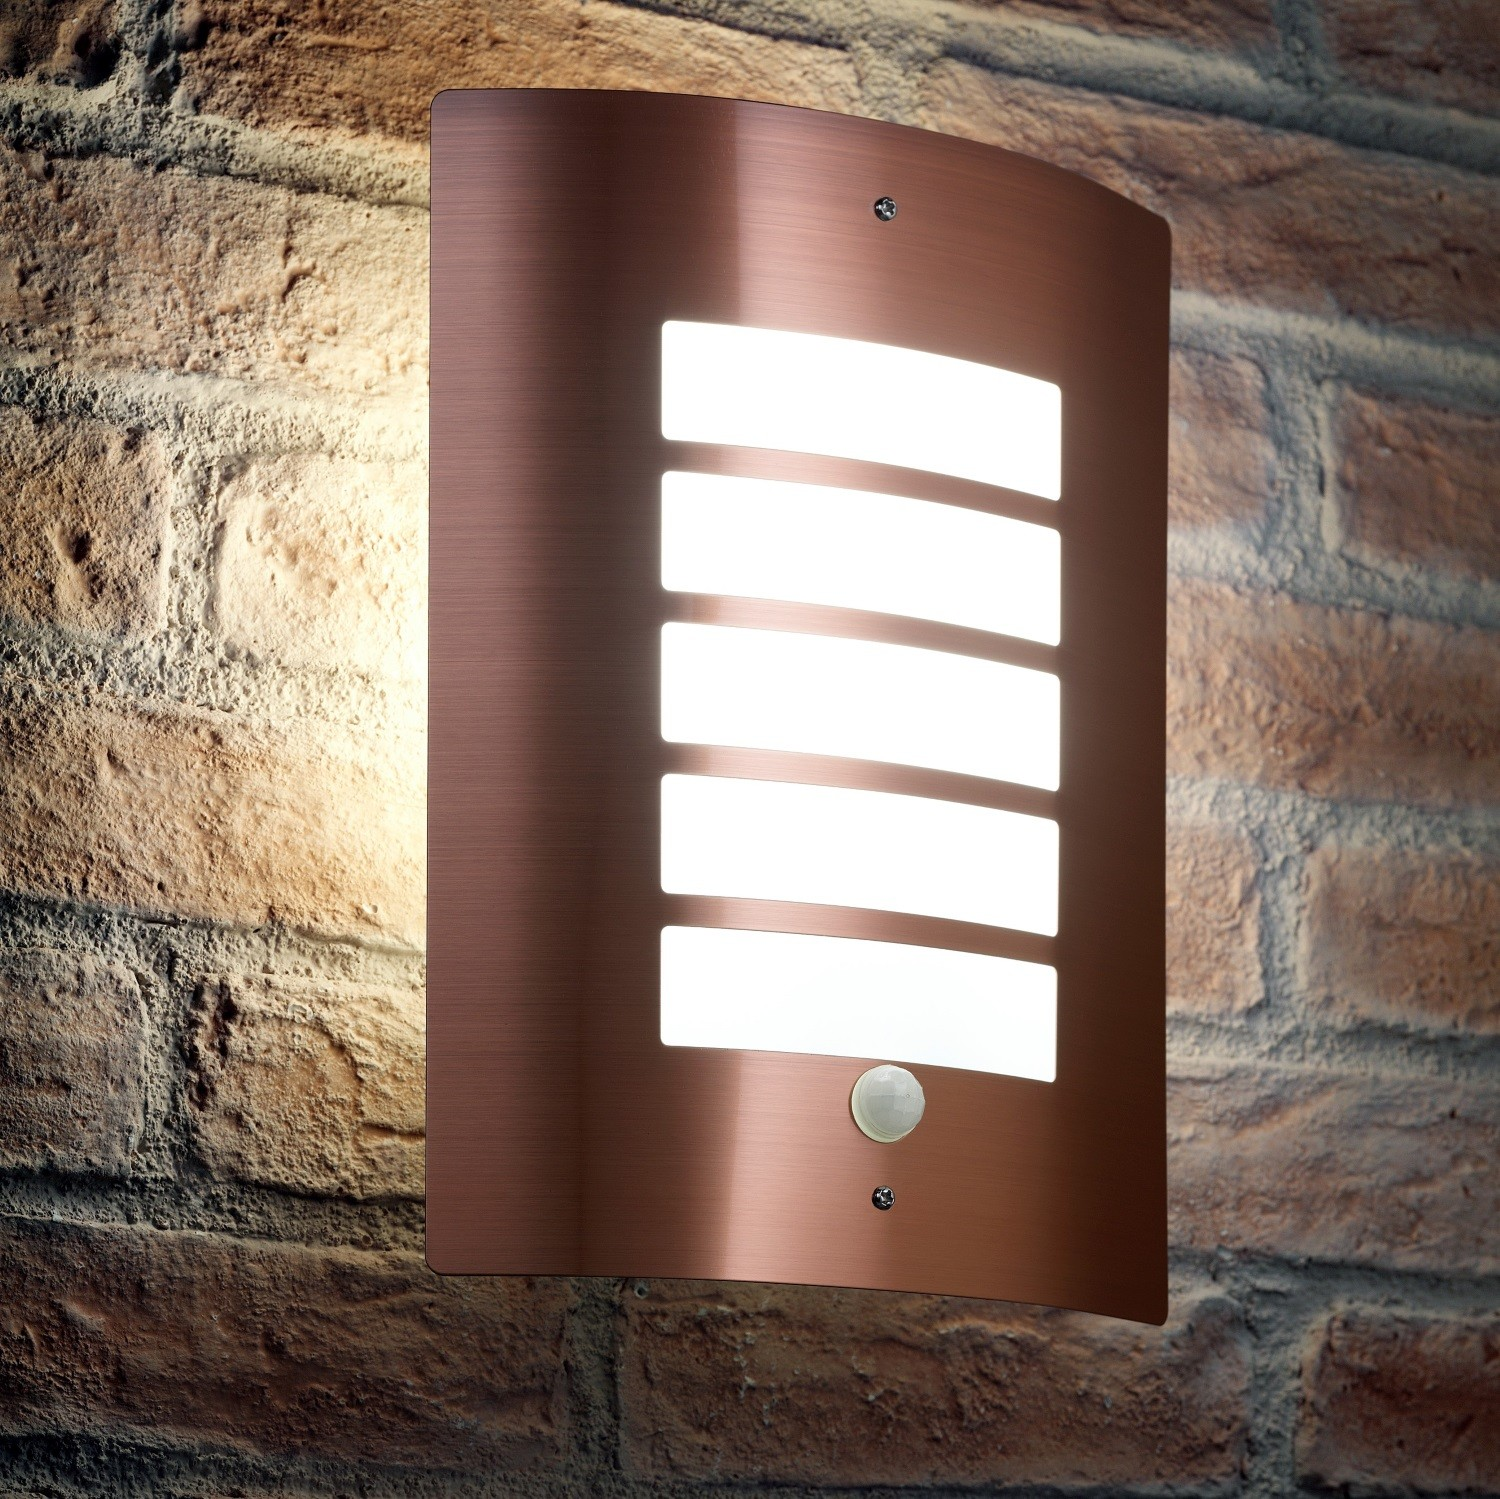 Auraglow Pir Motion Sensor Outdoor Security Wall Light